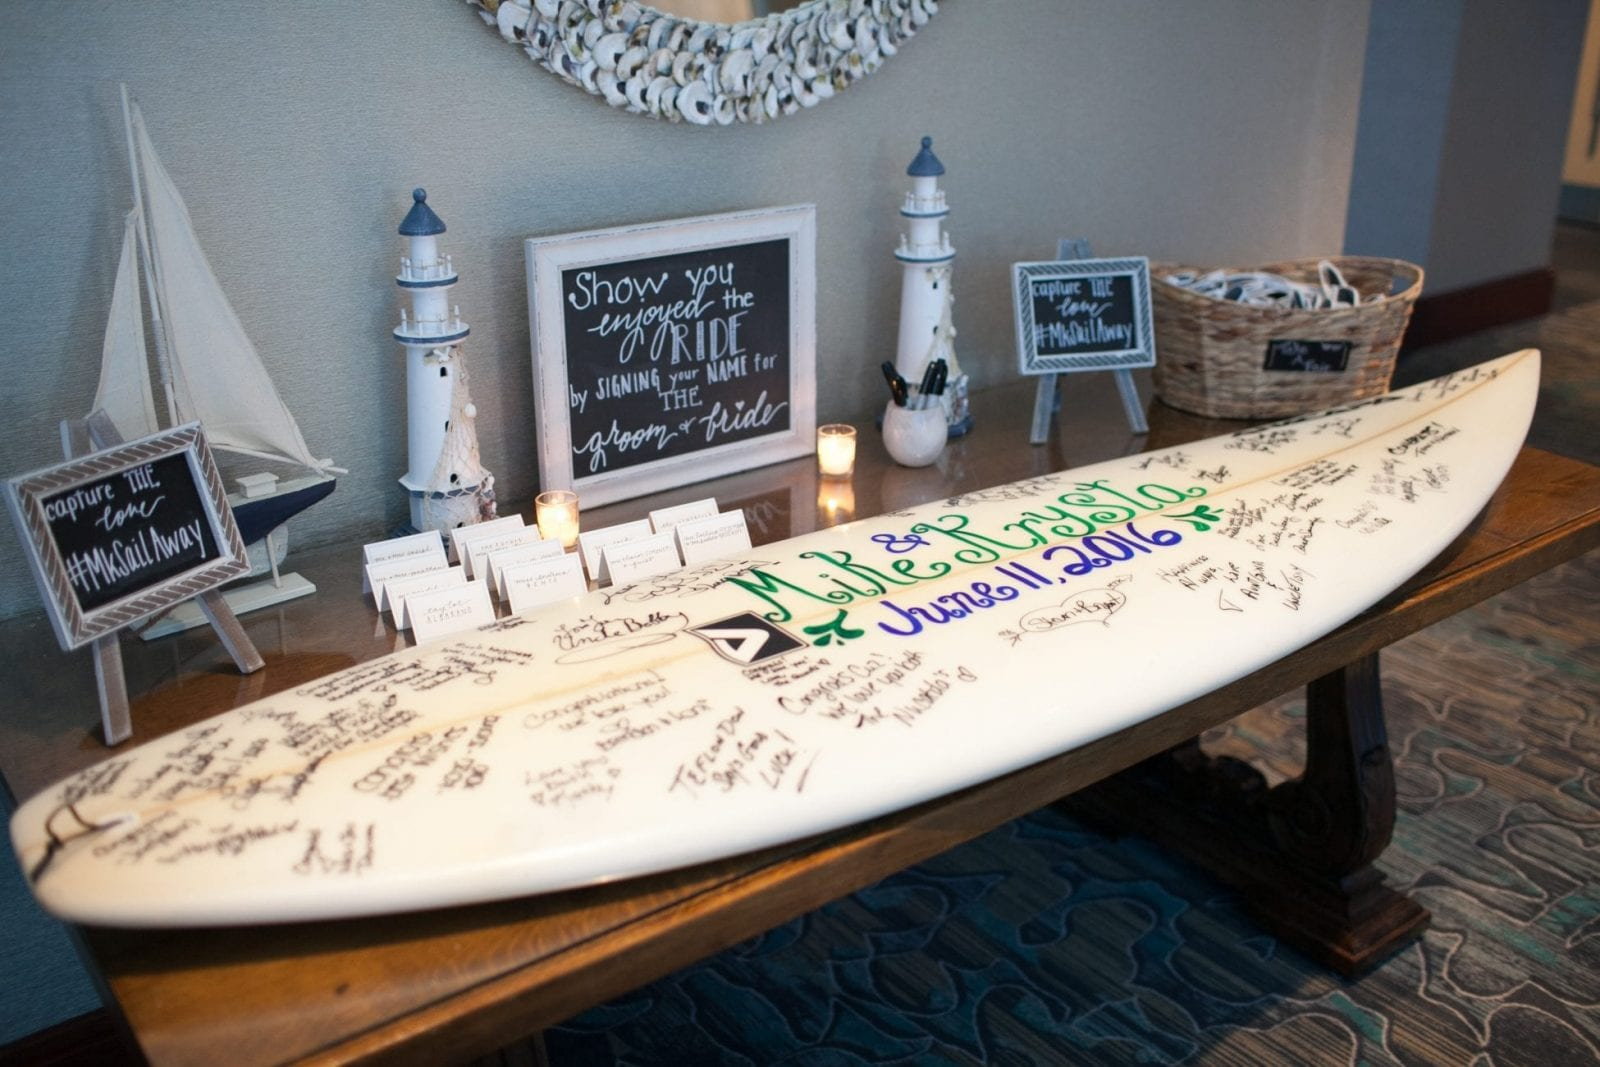 wedding guest book idea - surfboard signing